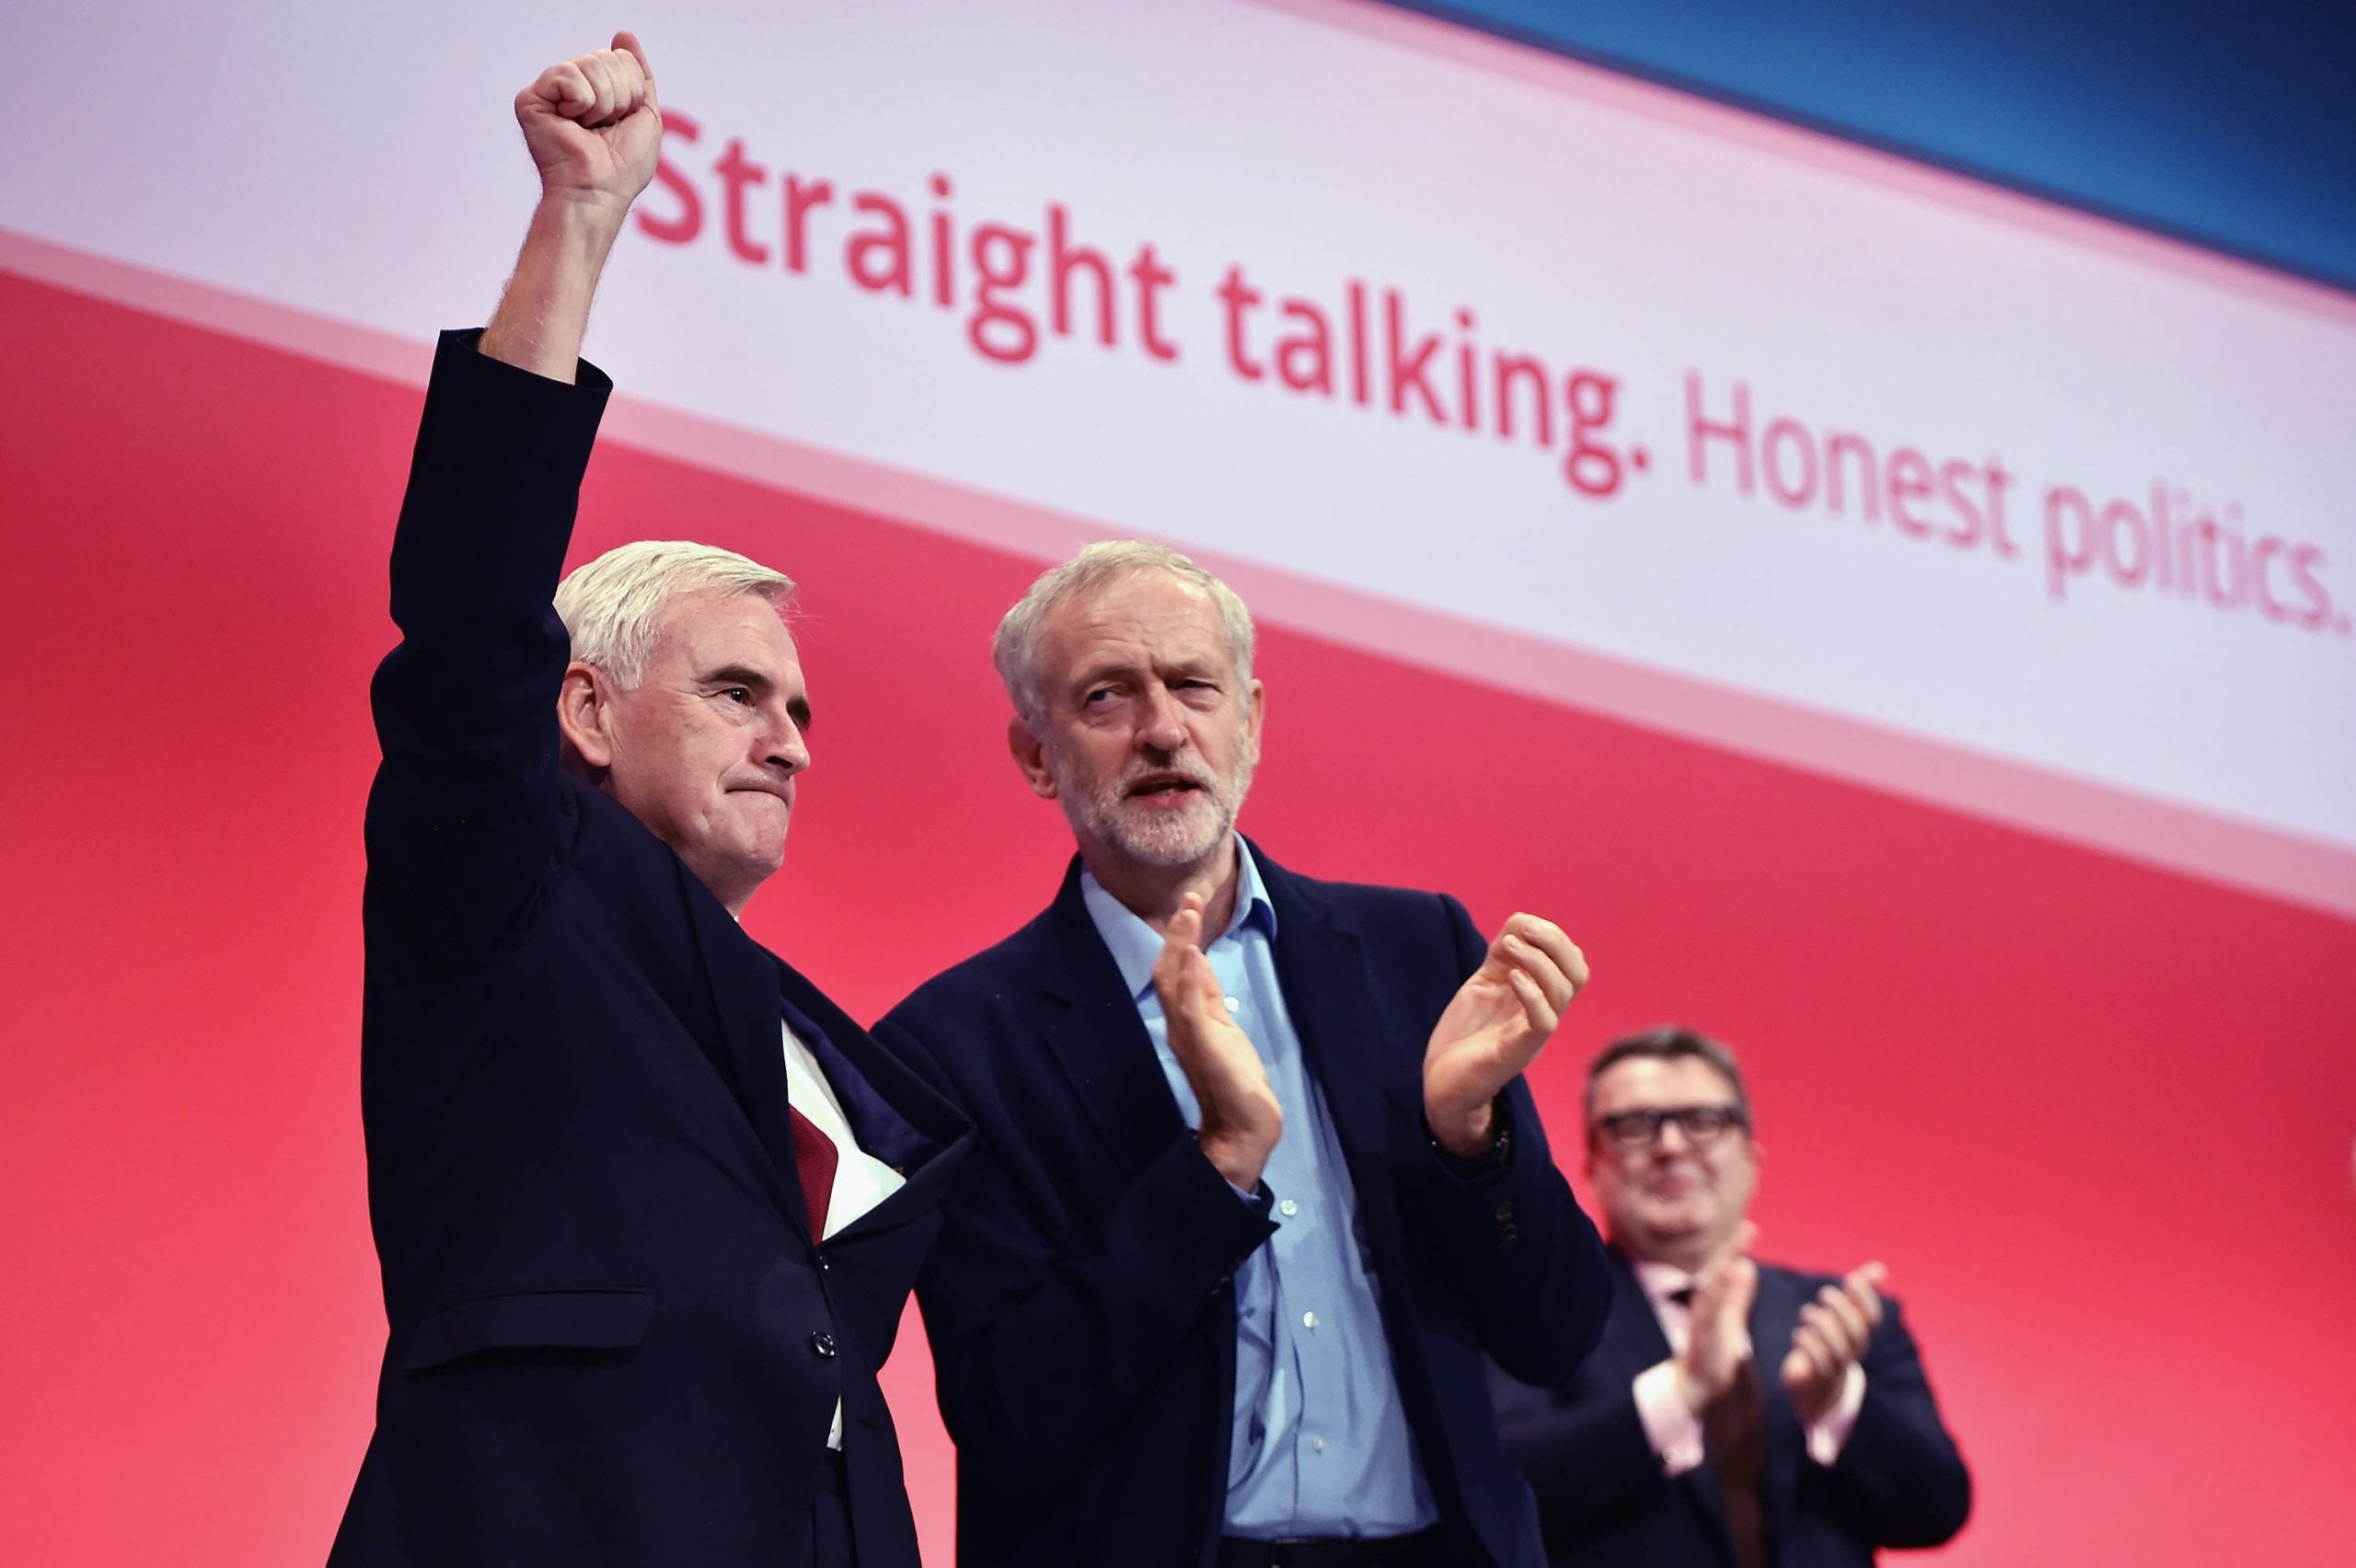 """John McDonnell on Labour's new politics: """"It's a story we can all be part of"""""""